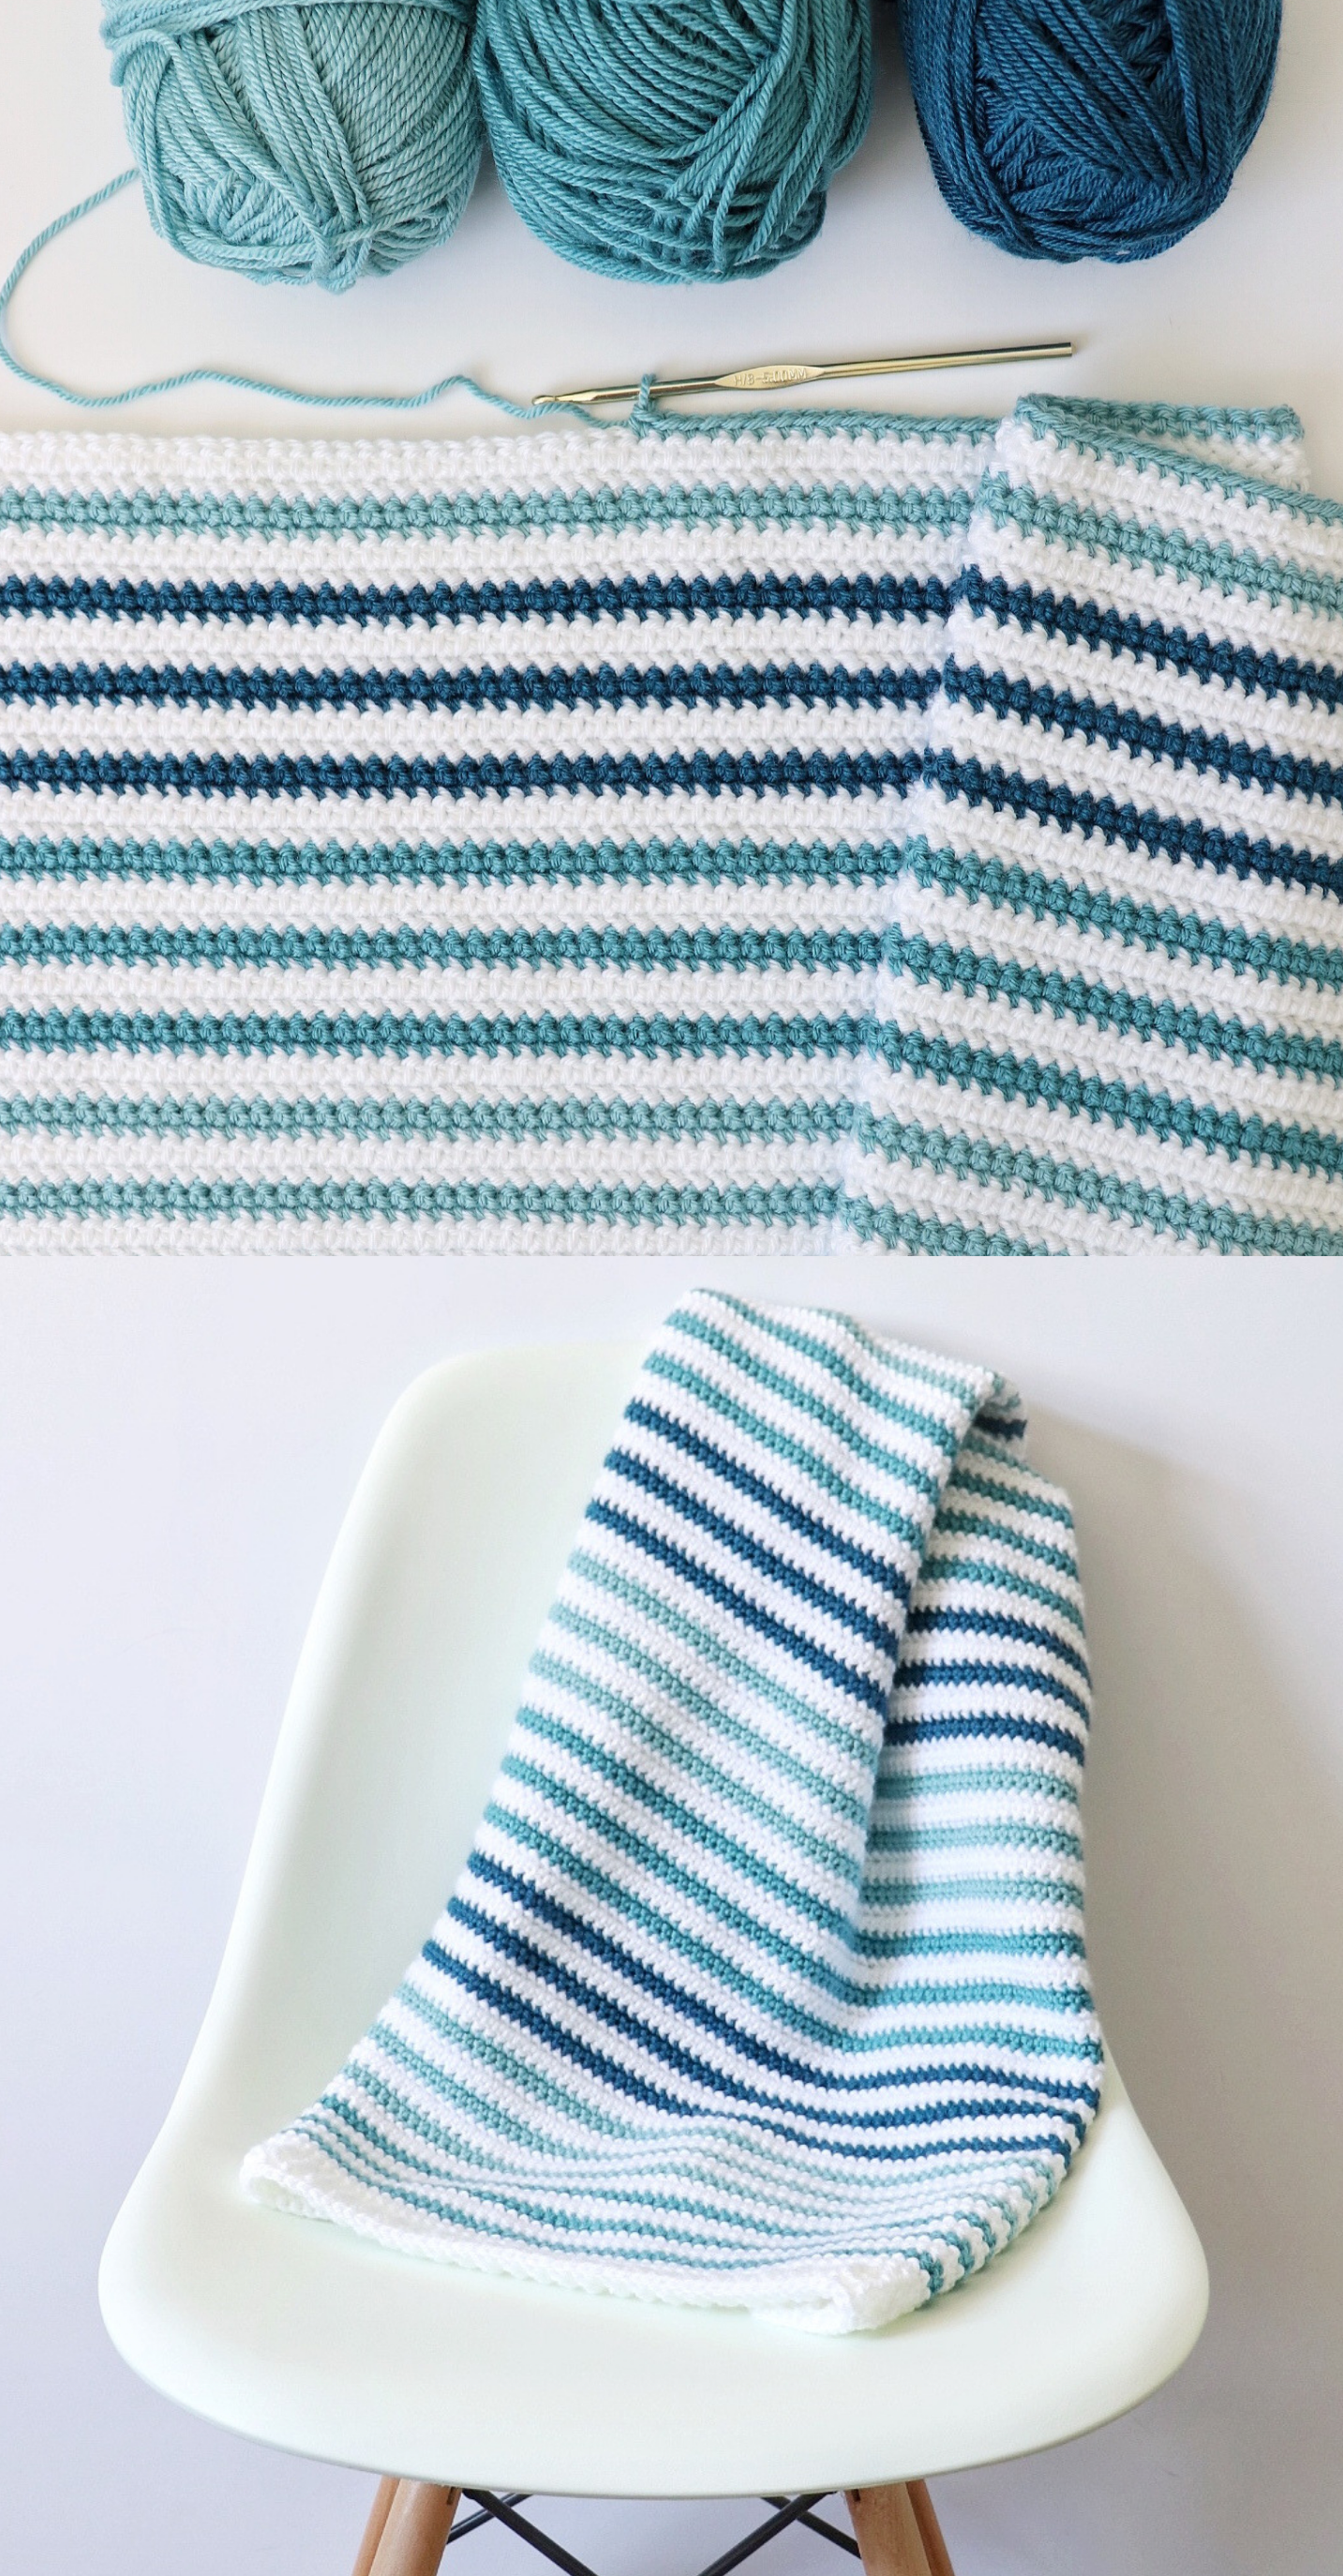 Free Crochet Blanket Pattern - Teal Stripes Baby Blanket #babyblanket